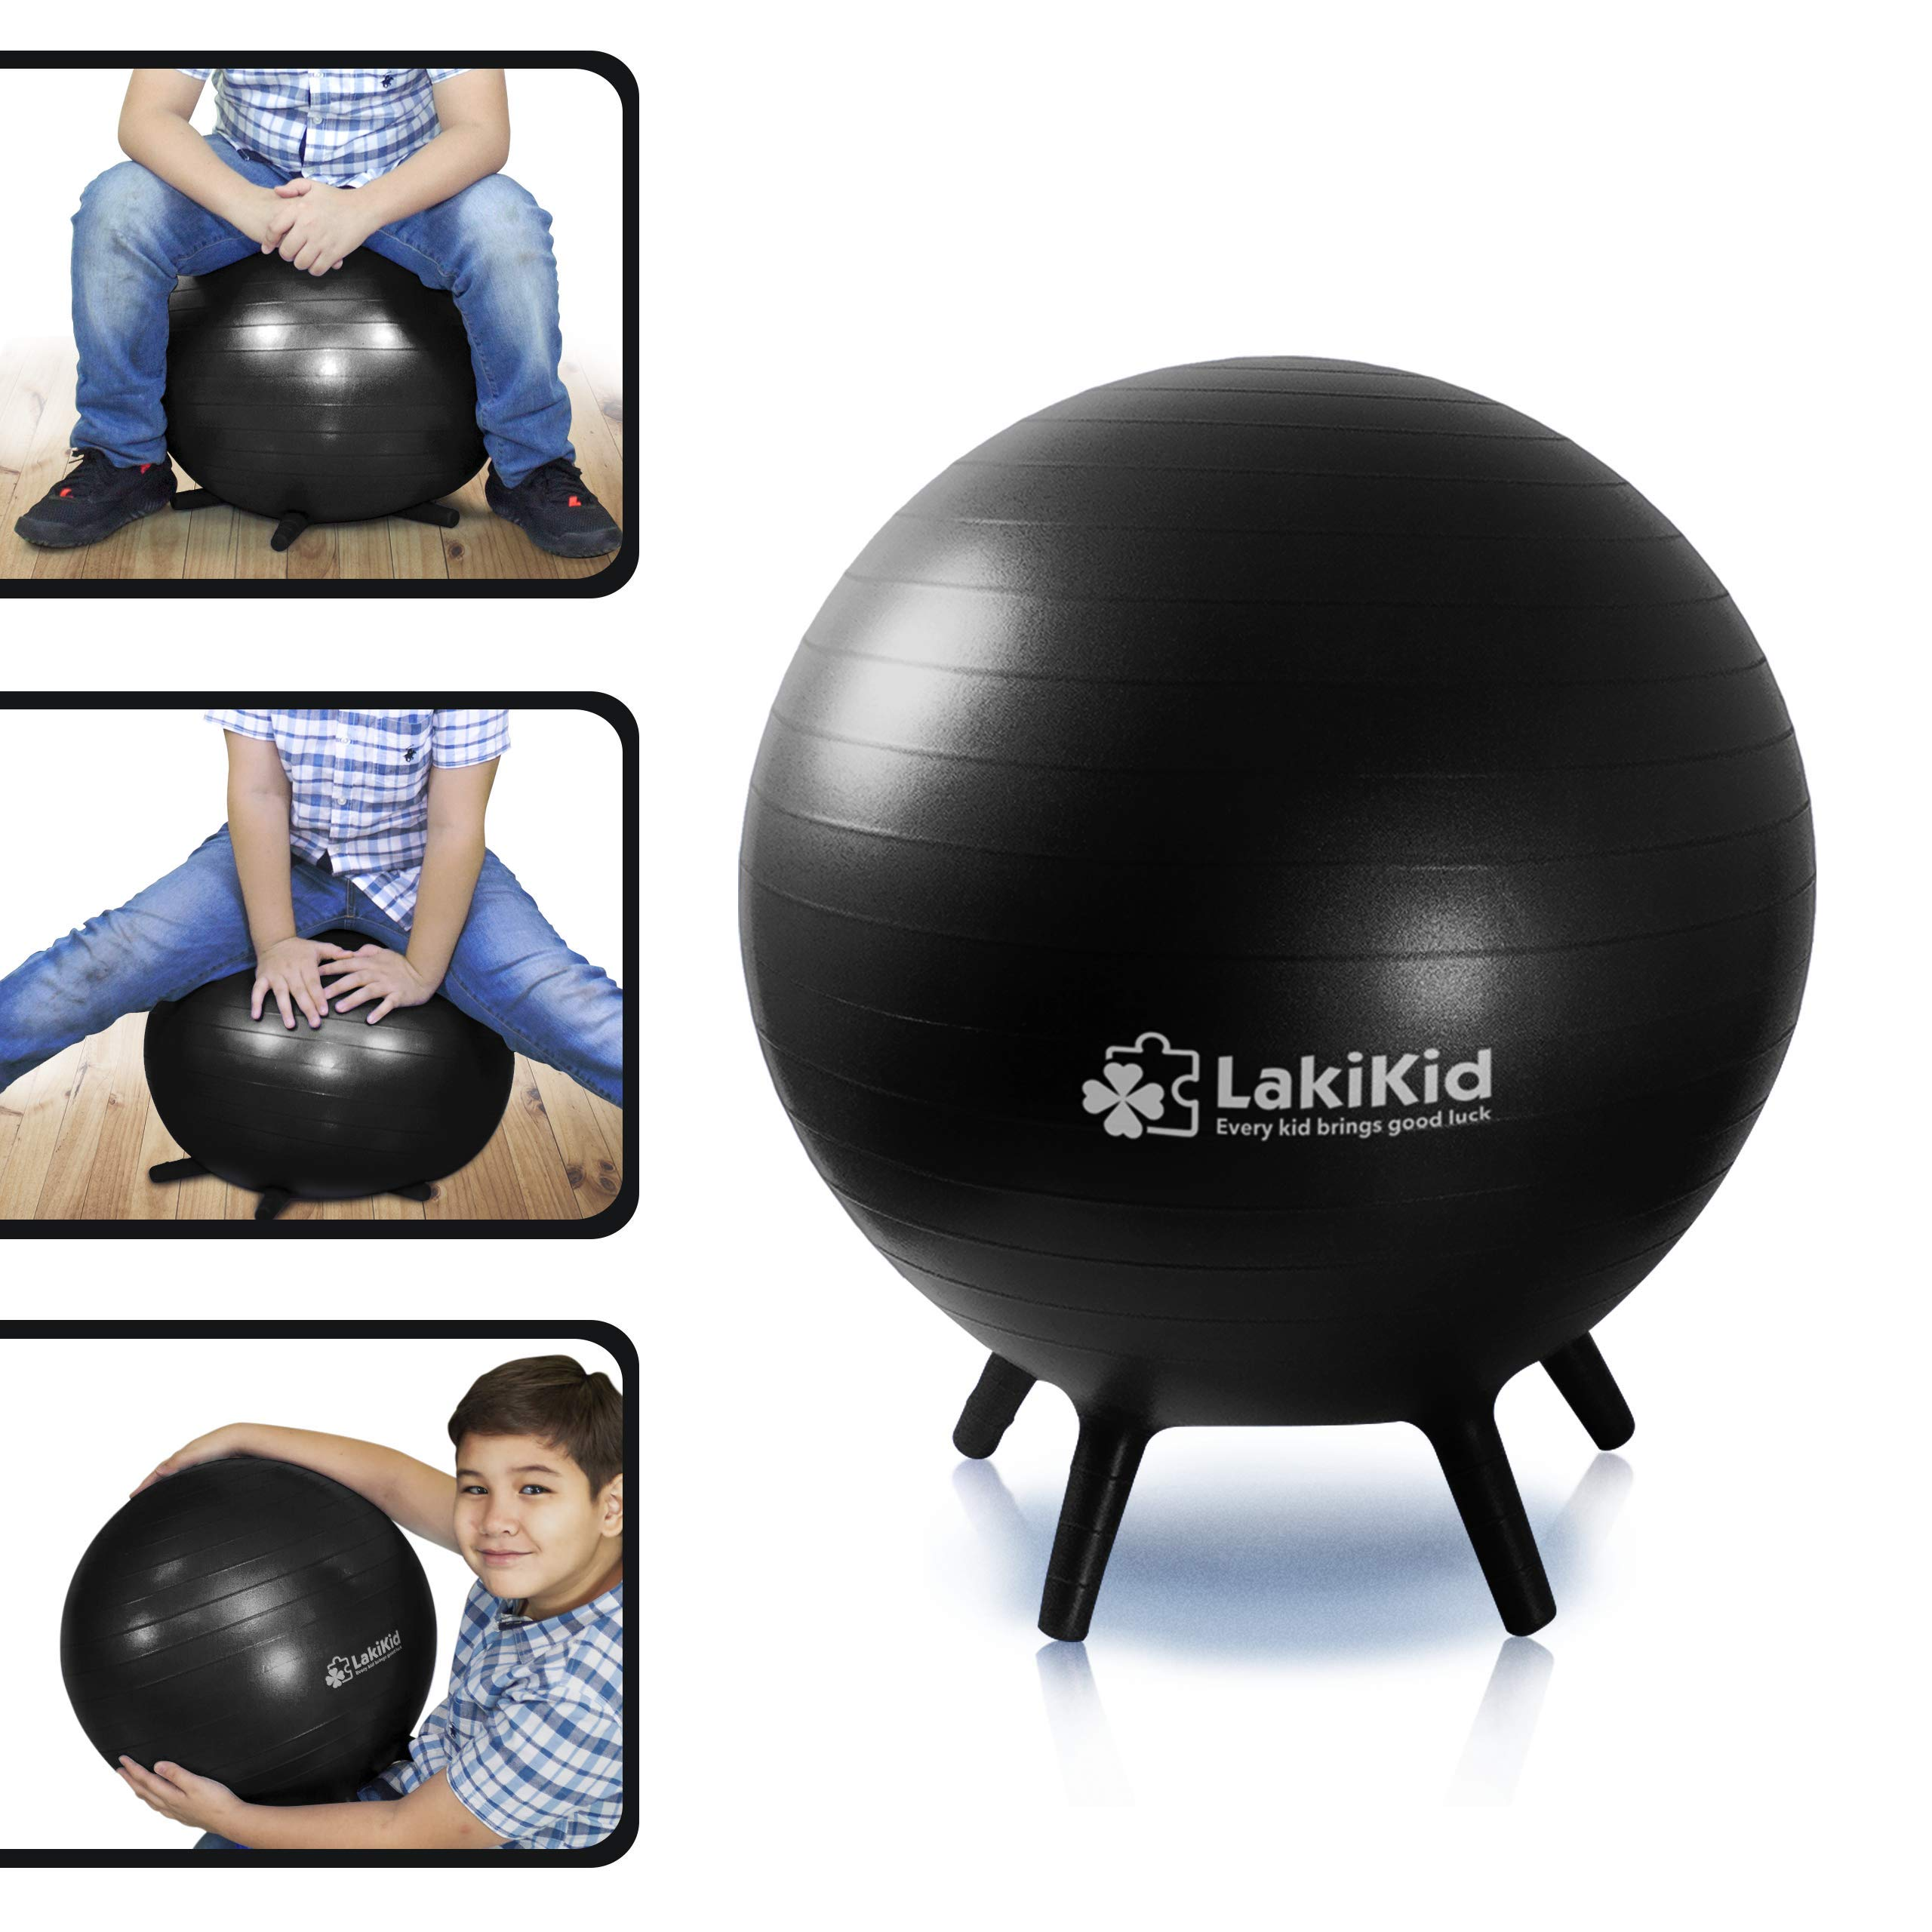 LakiKid Balance Ball Chairs for Kids - Perfect Stability Balls for Flexible Seating Classroom - Fun Alternative Seating for Students (Kids (45cm), Black)